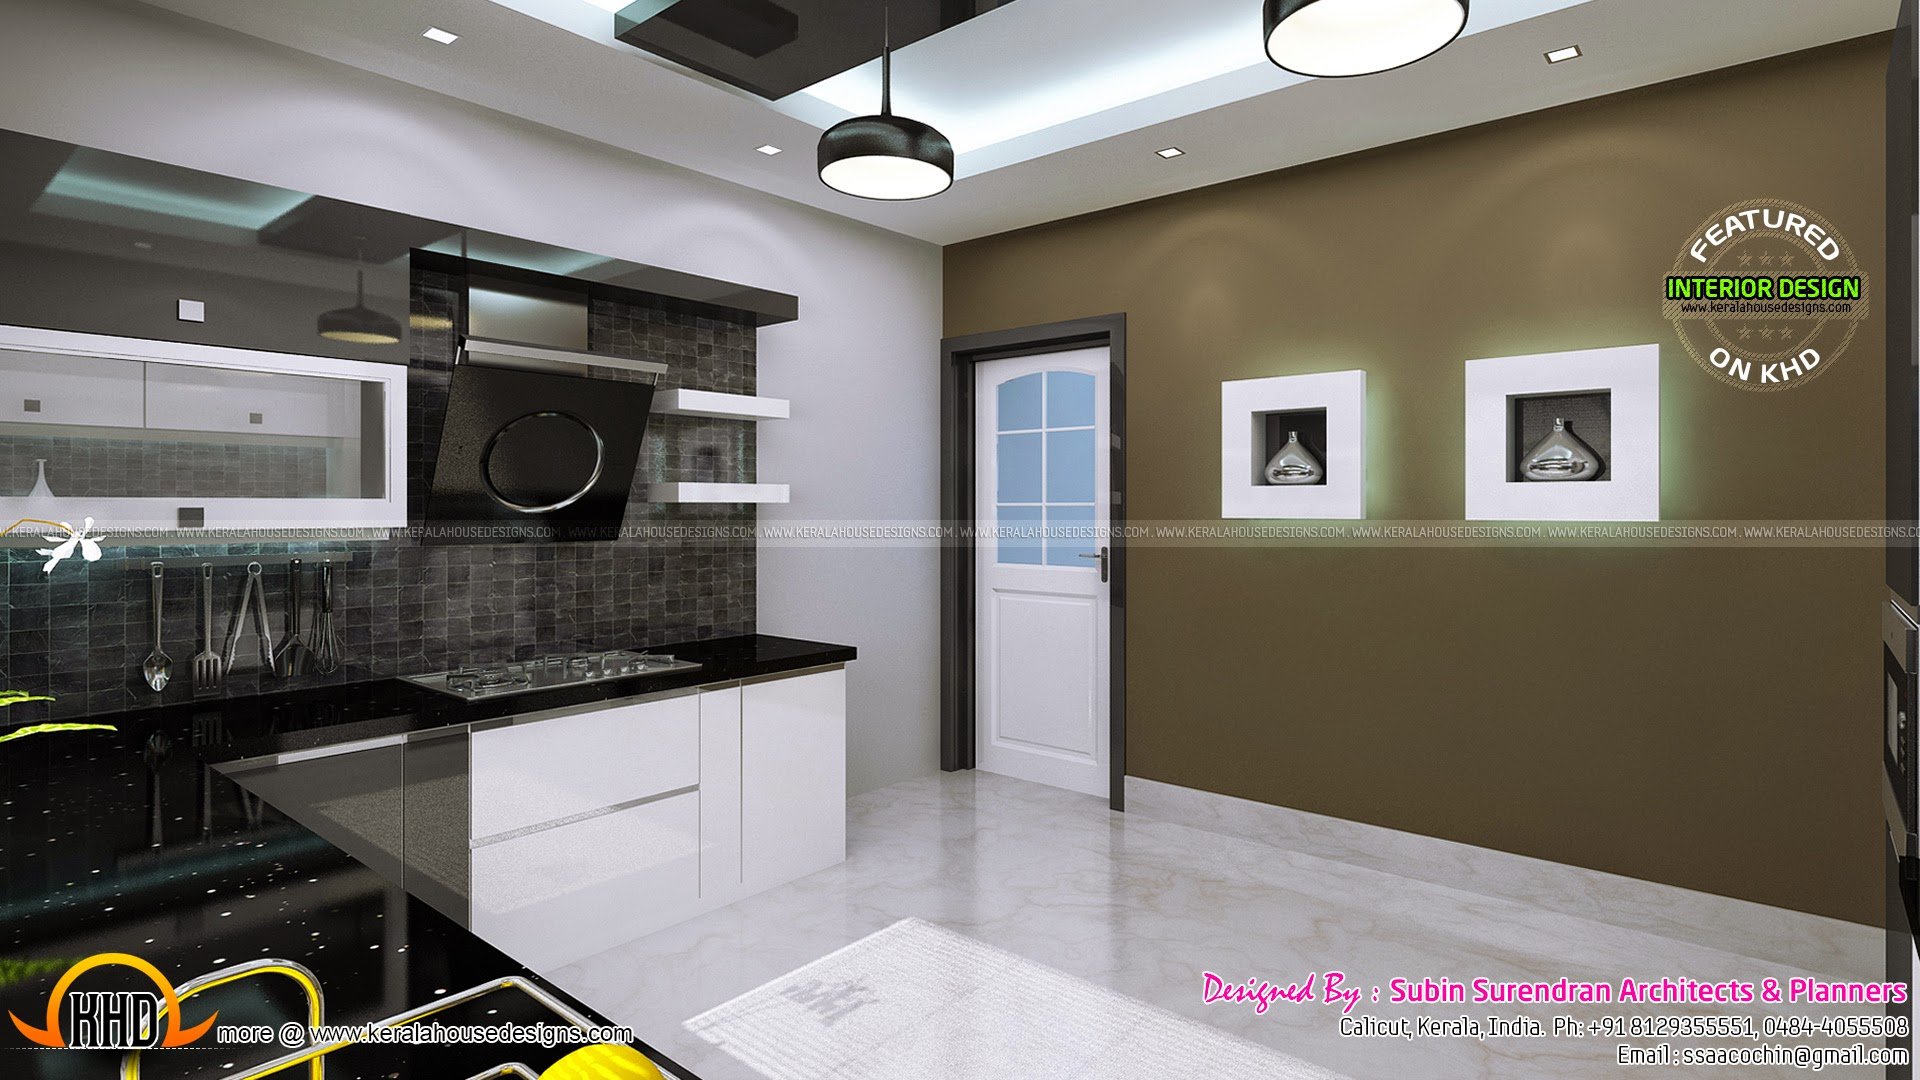 Interior bedroom kitchen dining kerala home design for Kitchen and bedroom designs